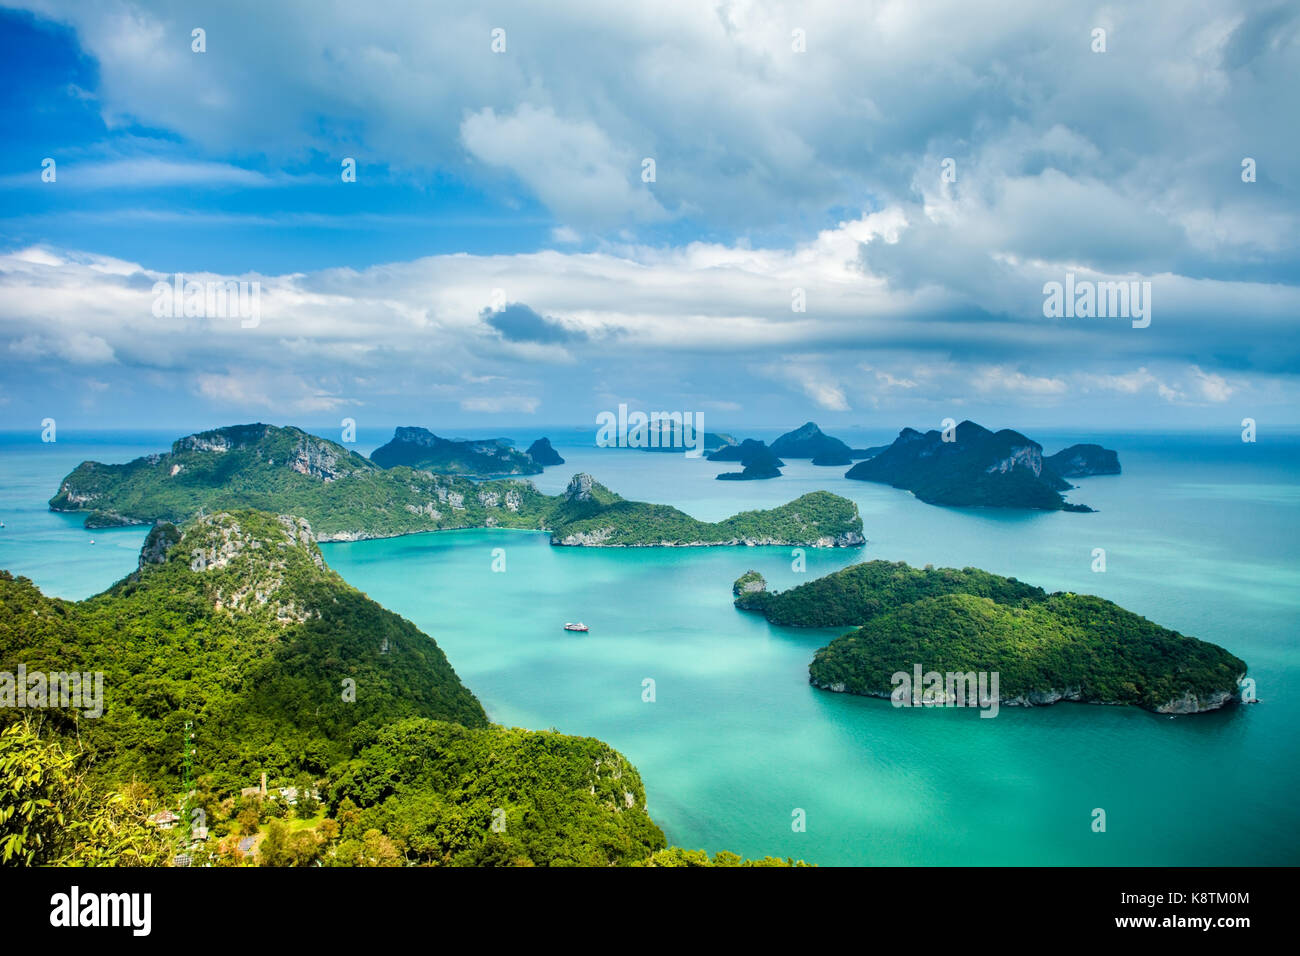 Tropical group of islands in Ang Thong National Marine Park, Thailand. Top view - Stock Image